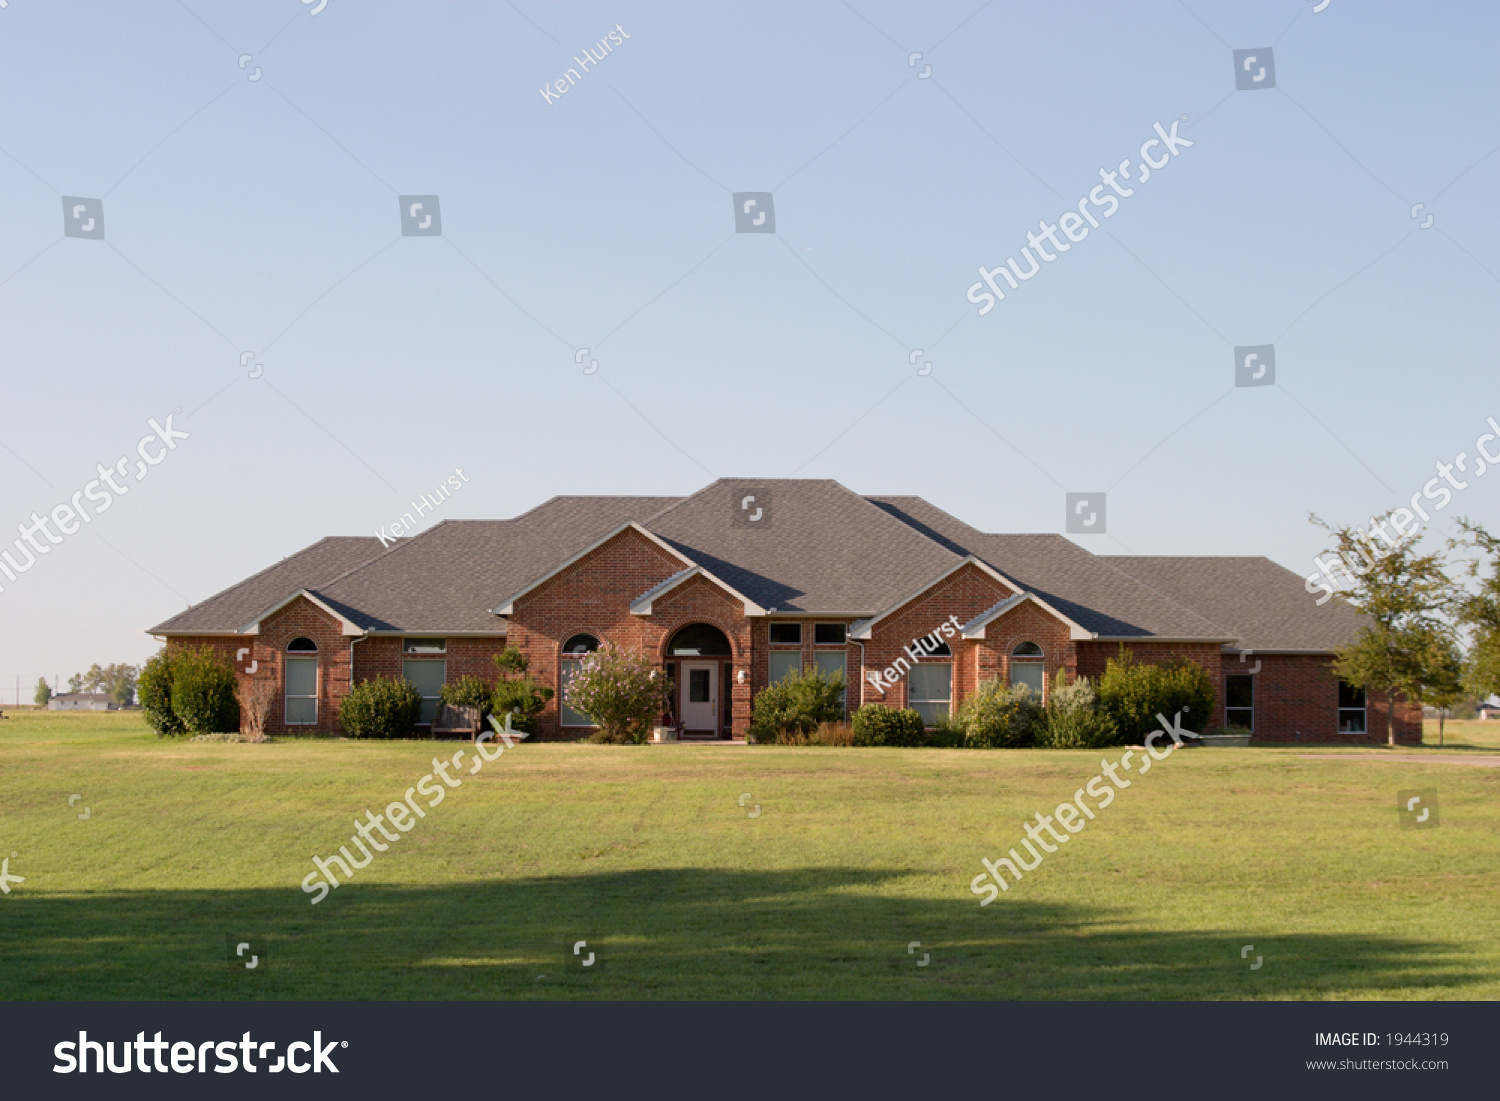 Big spralling modern ranch style house stock photo 1944319 for Big ranch house